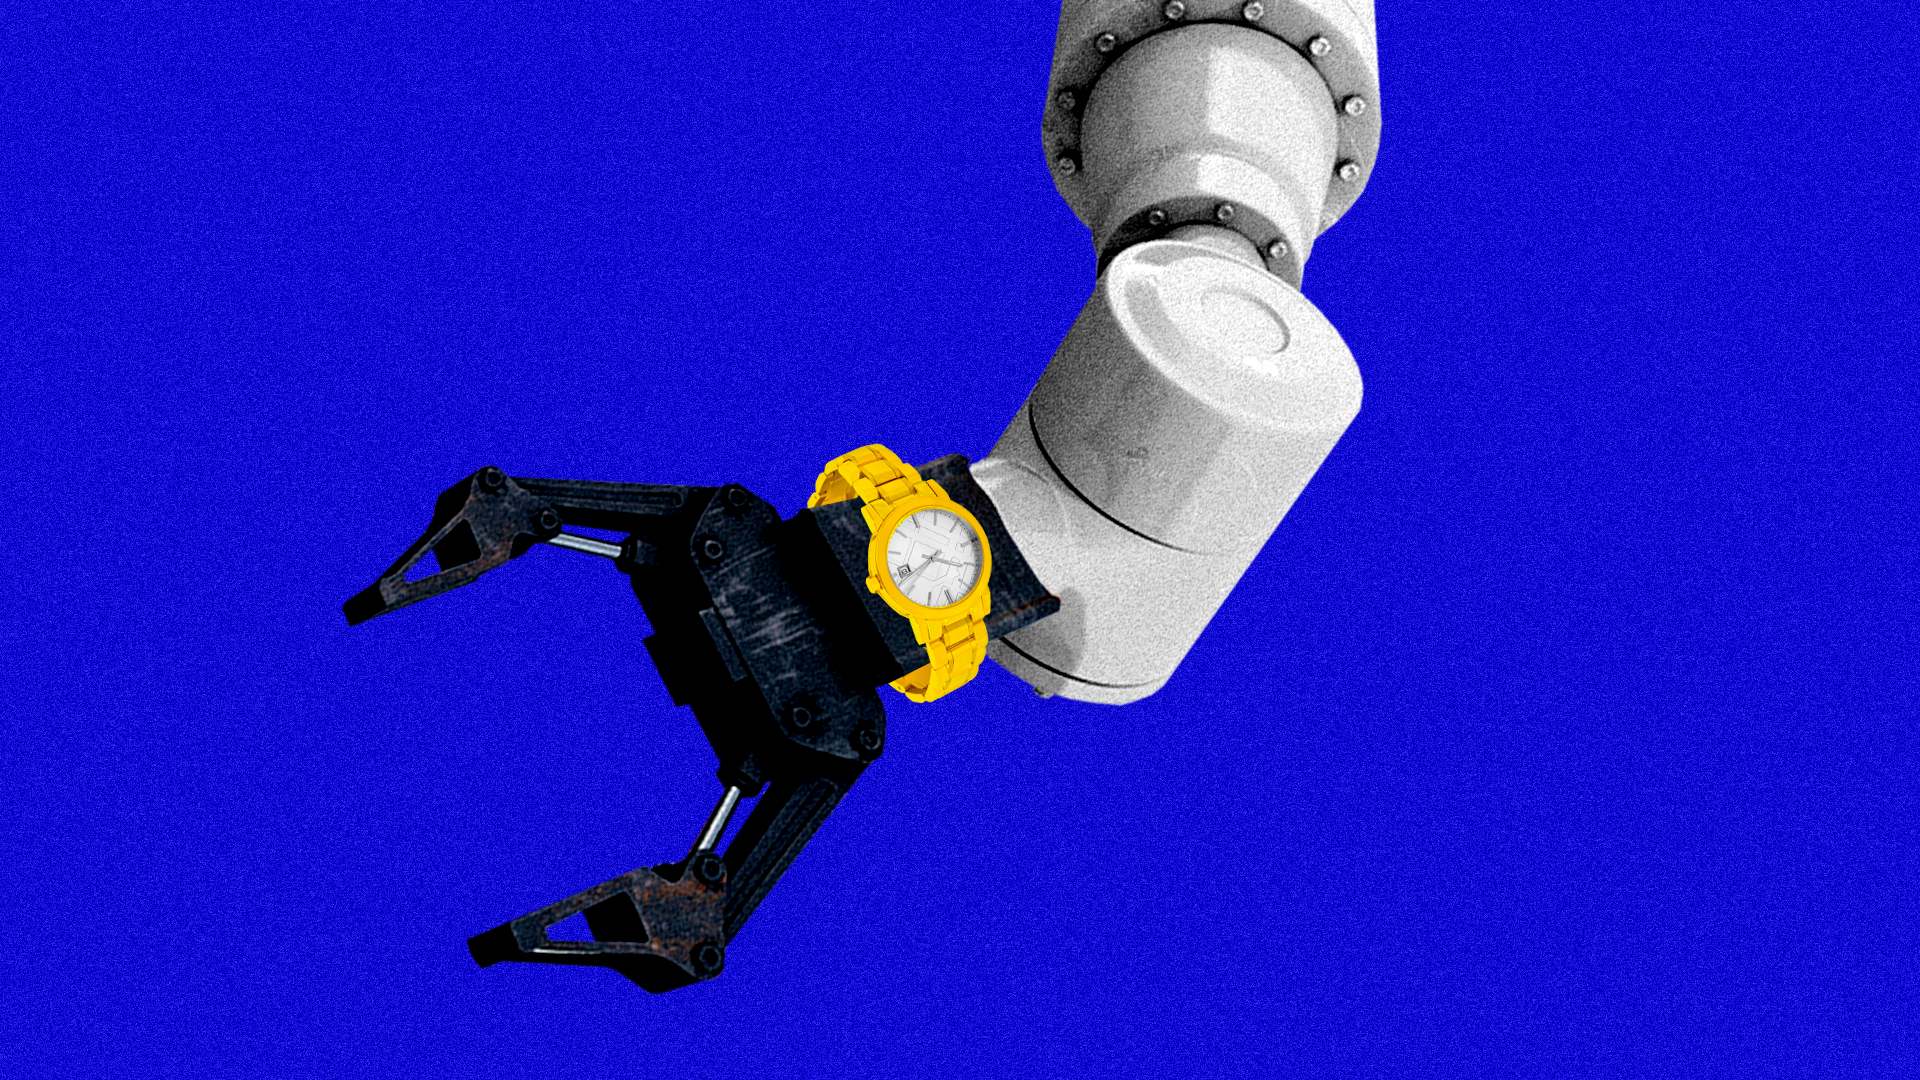 Illustration of a robot arm wearing a watch